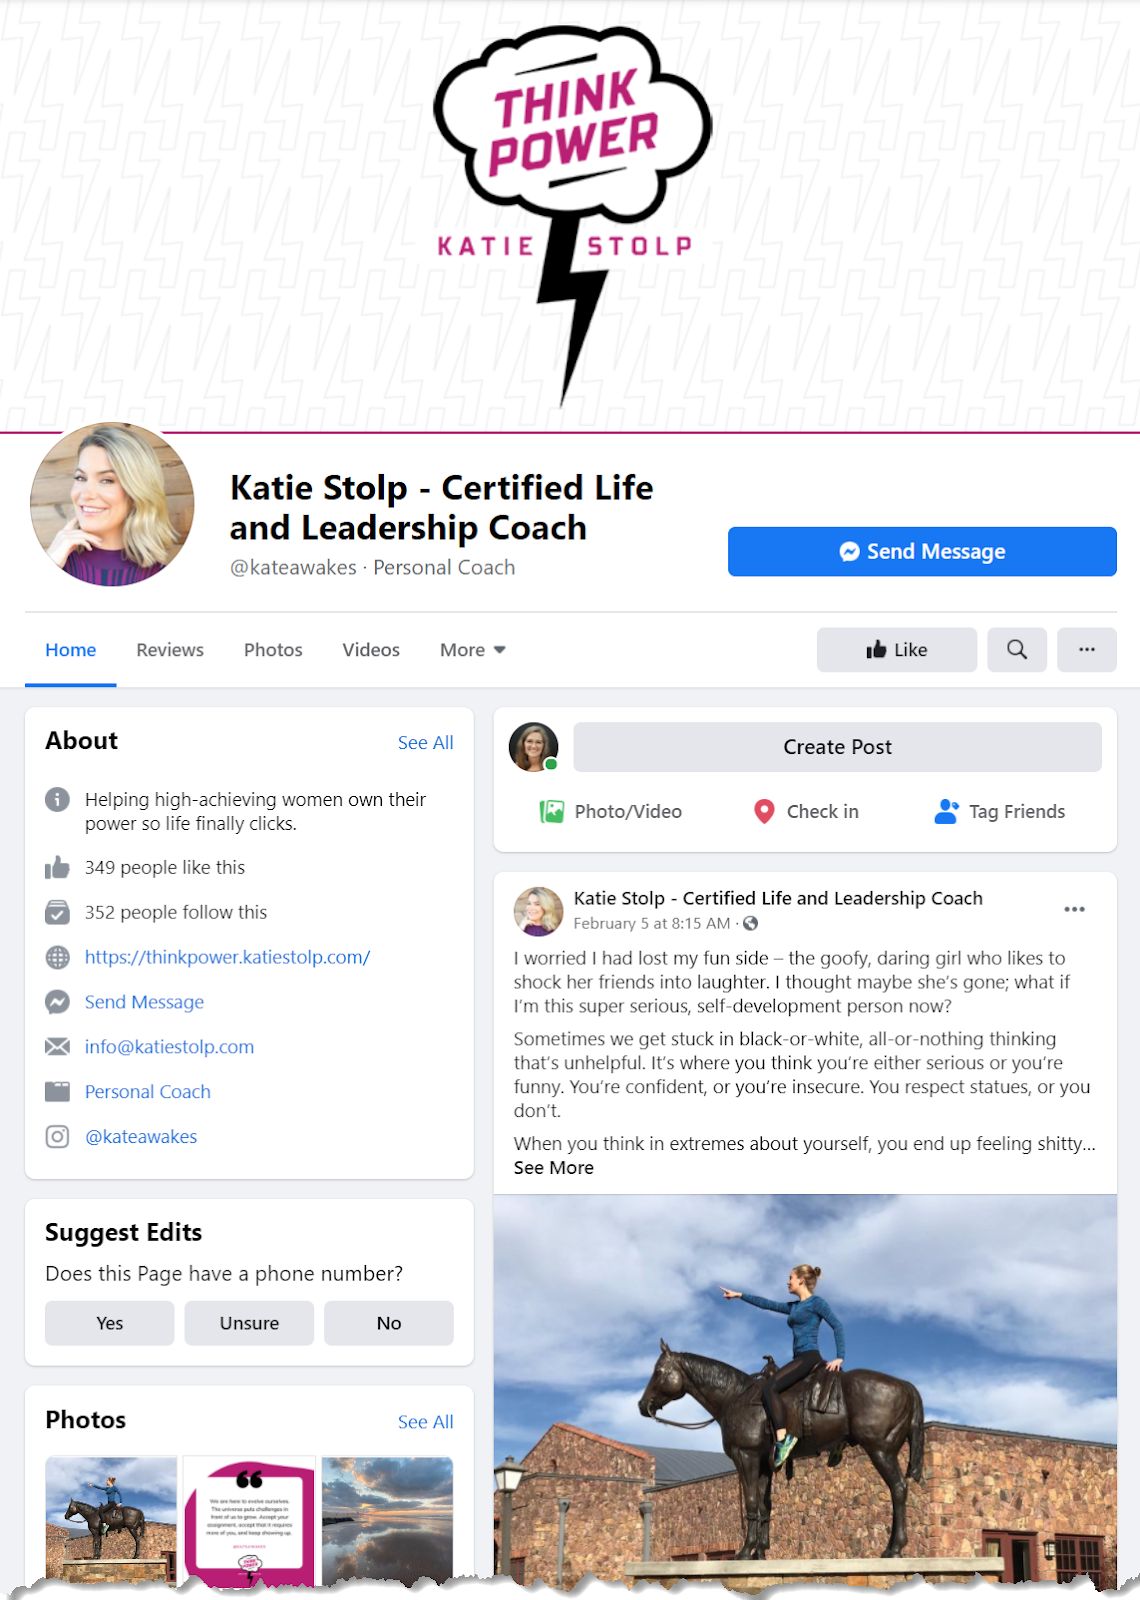 Life coach Katie Stolp's Facebook business page